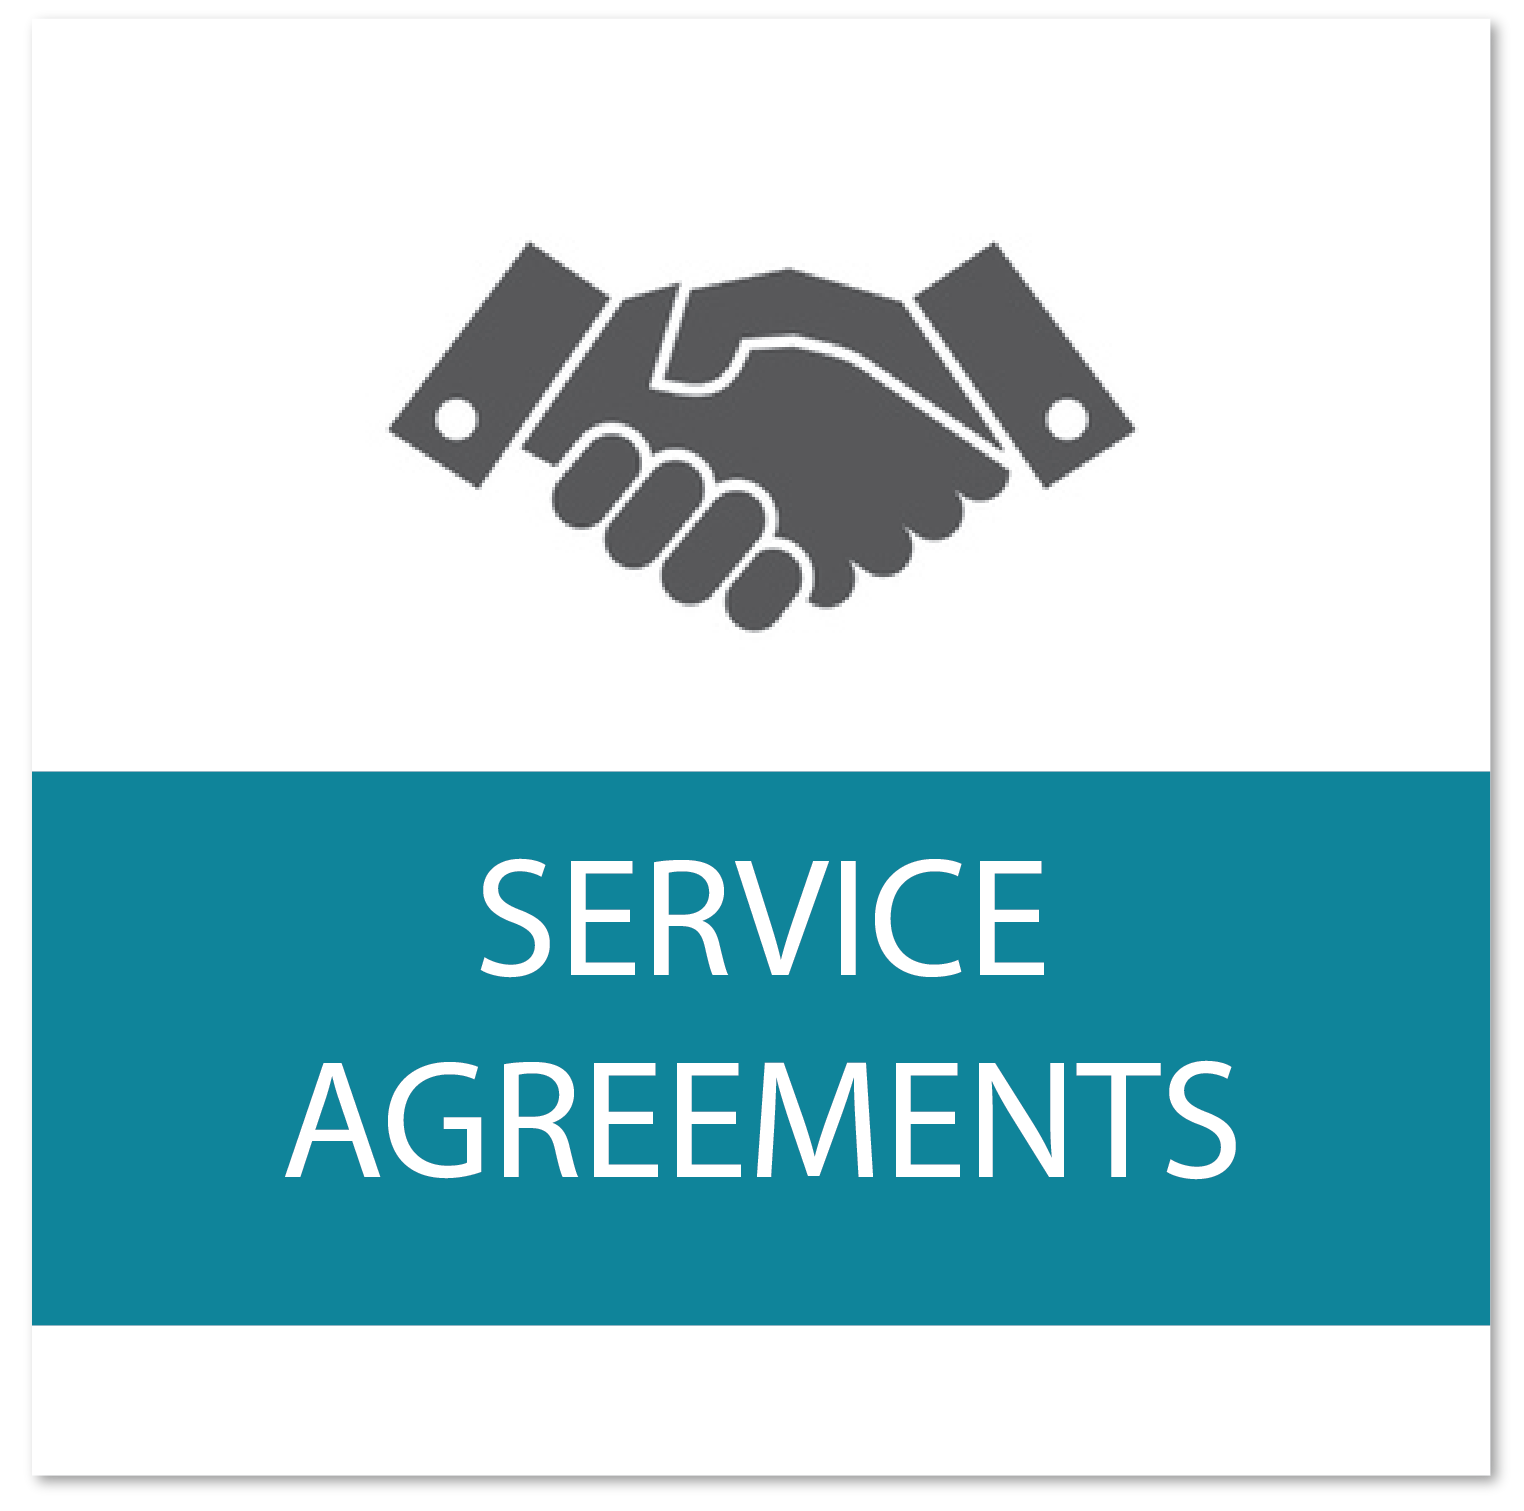 "The New Flat Rate also provides scripts to help your team sell service agreements! By simply following our easy process your customers will buy new service agreements with virtually no ""selling"" required and usually in less than 10 seconds."